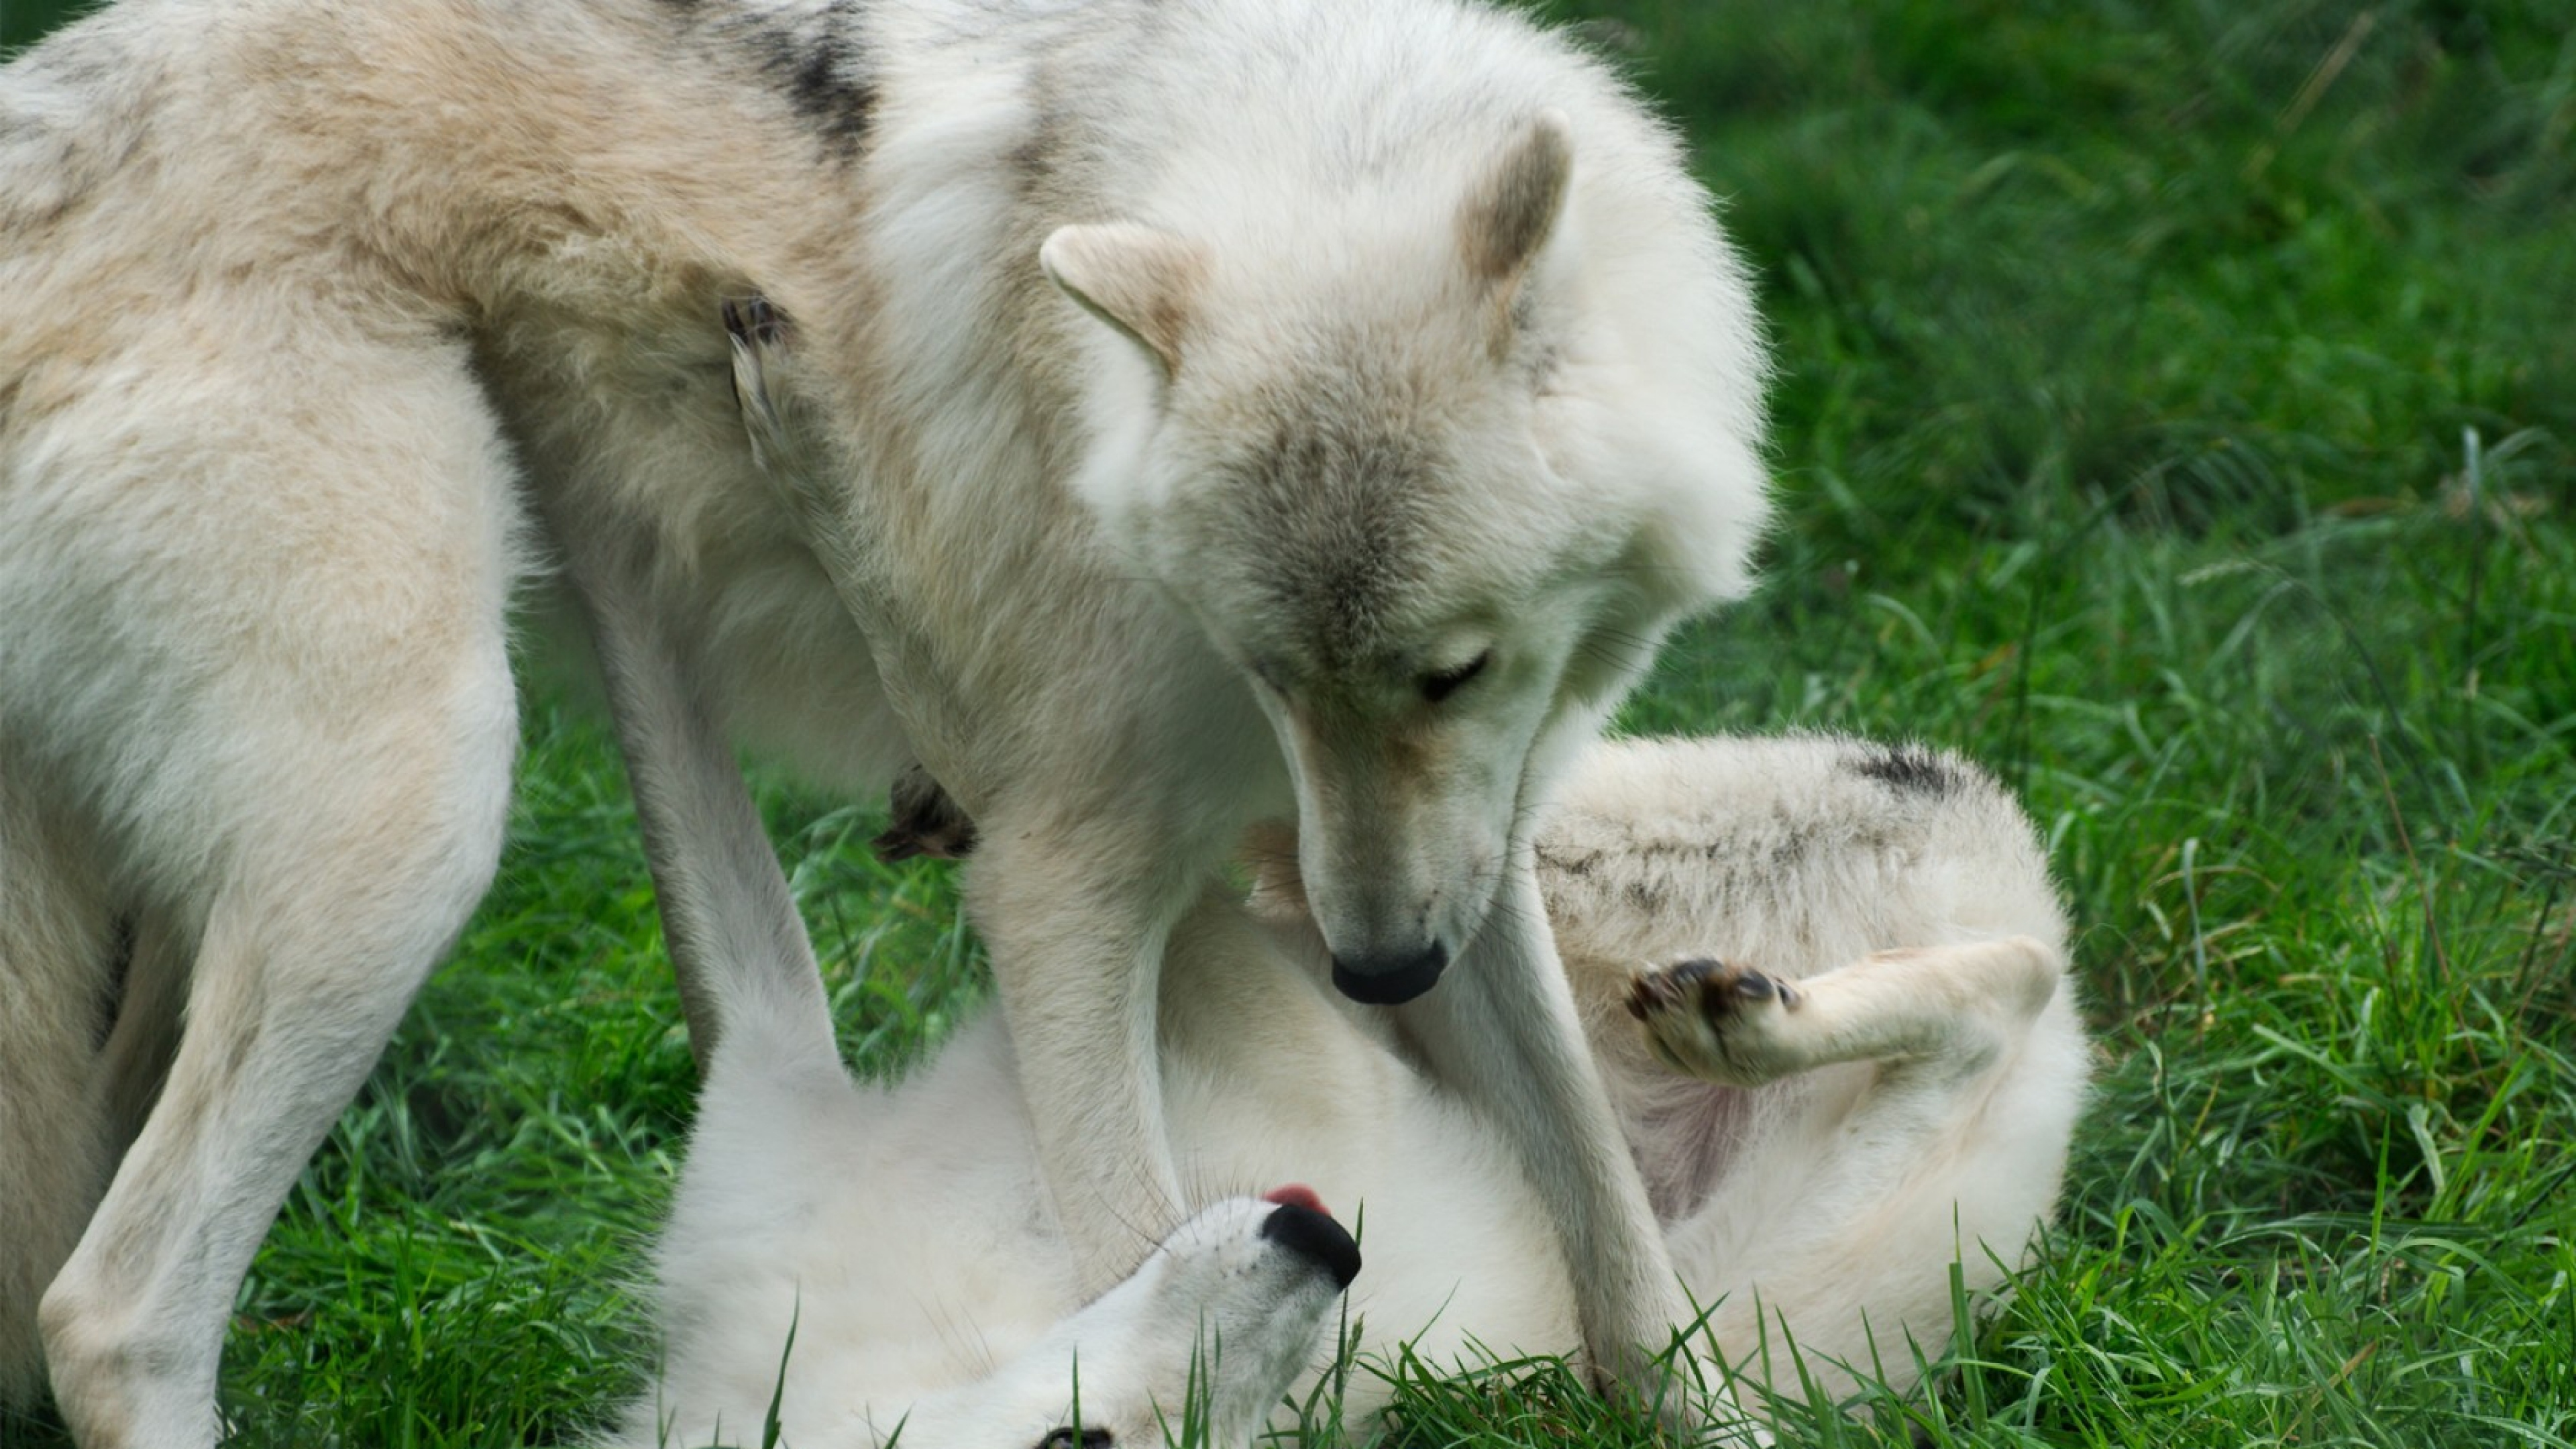 Download Wallpaper 3840x2160 Wolves Grass Game Couple Two 4K Ultra 3840x2160